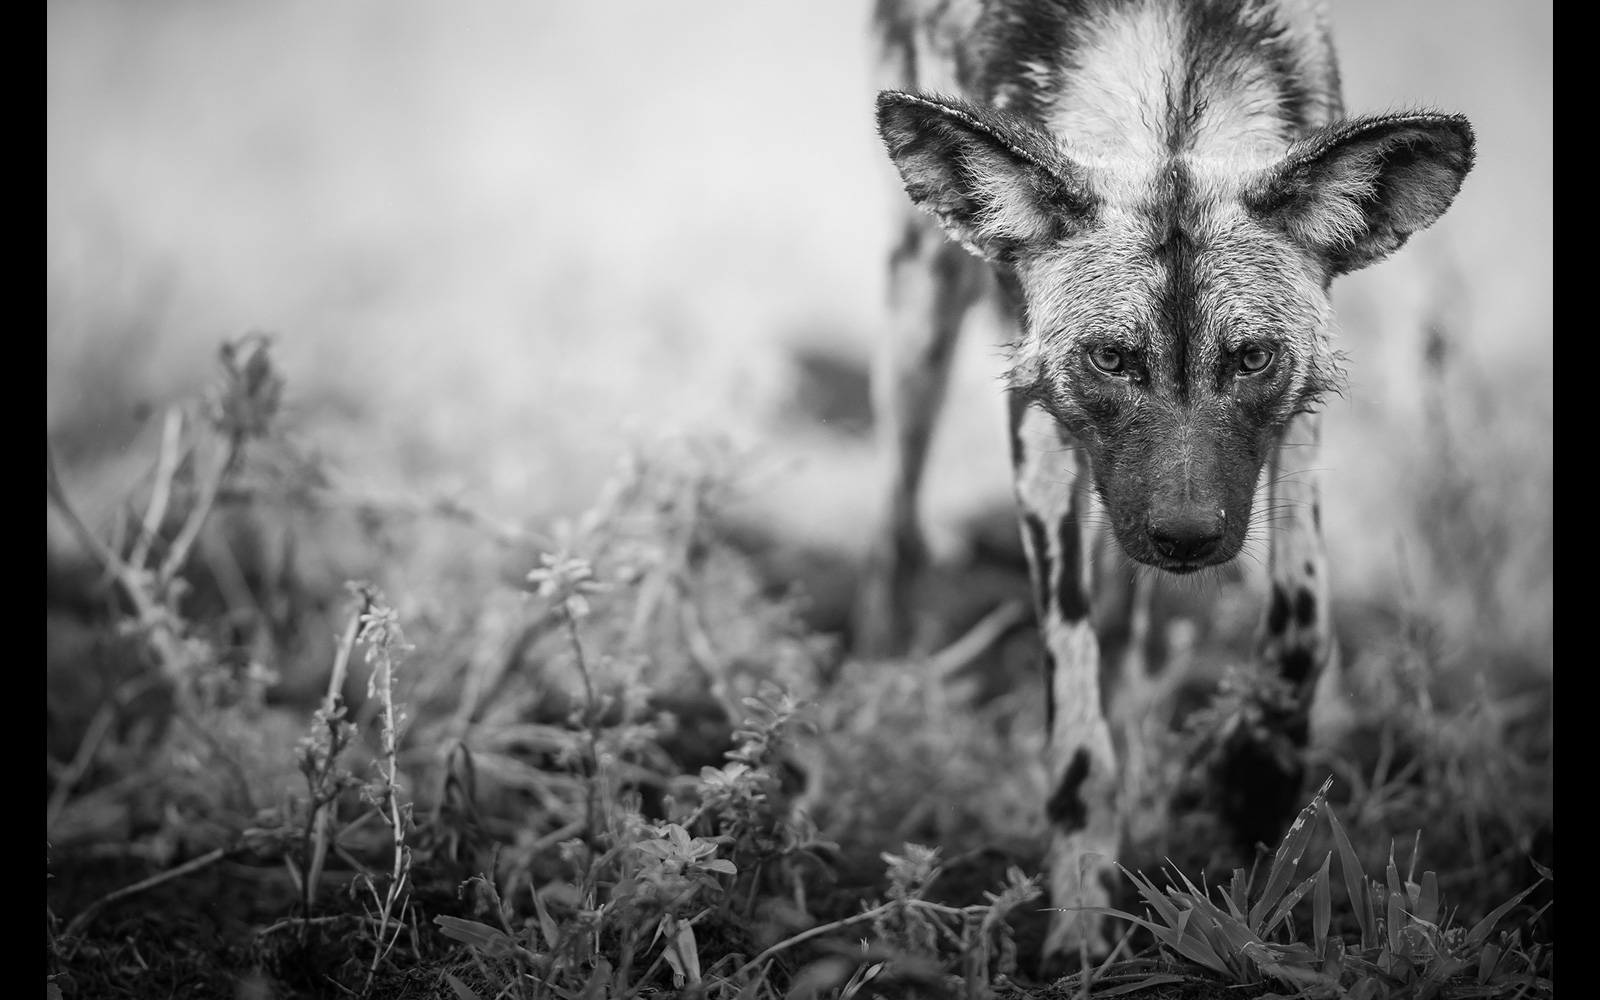 Staring into the eyes of an endangered African wild dog in Imfolozi Game Reserve, South Africa © Chantelle Melzer